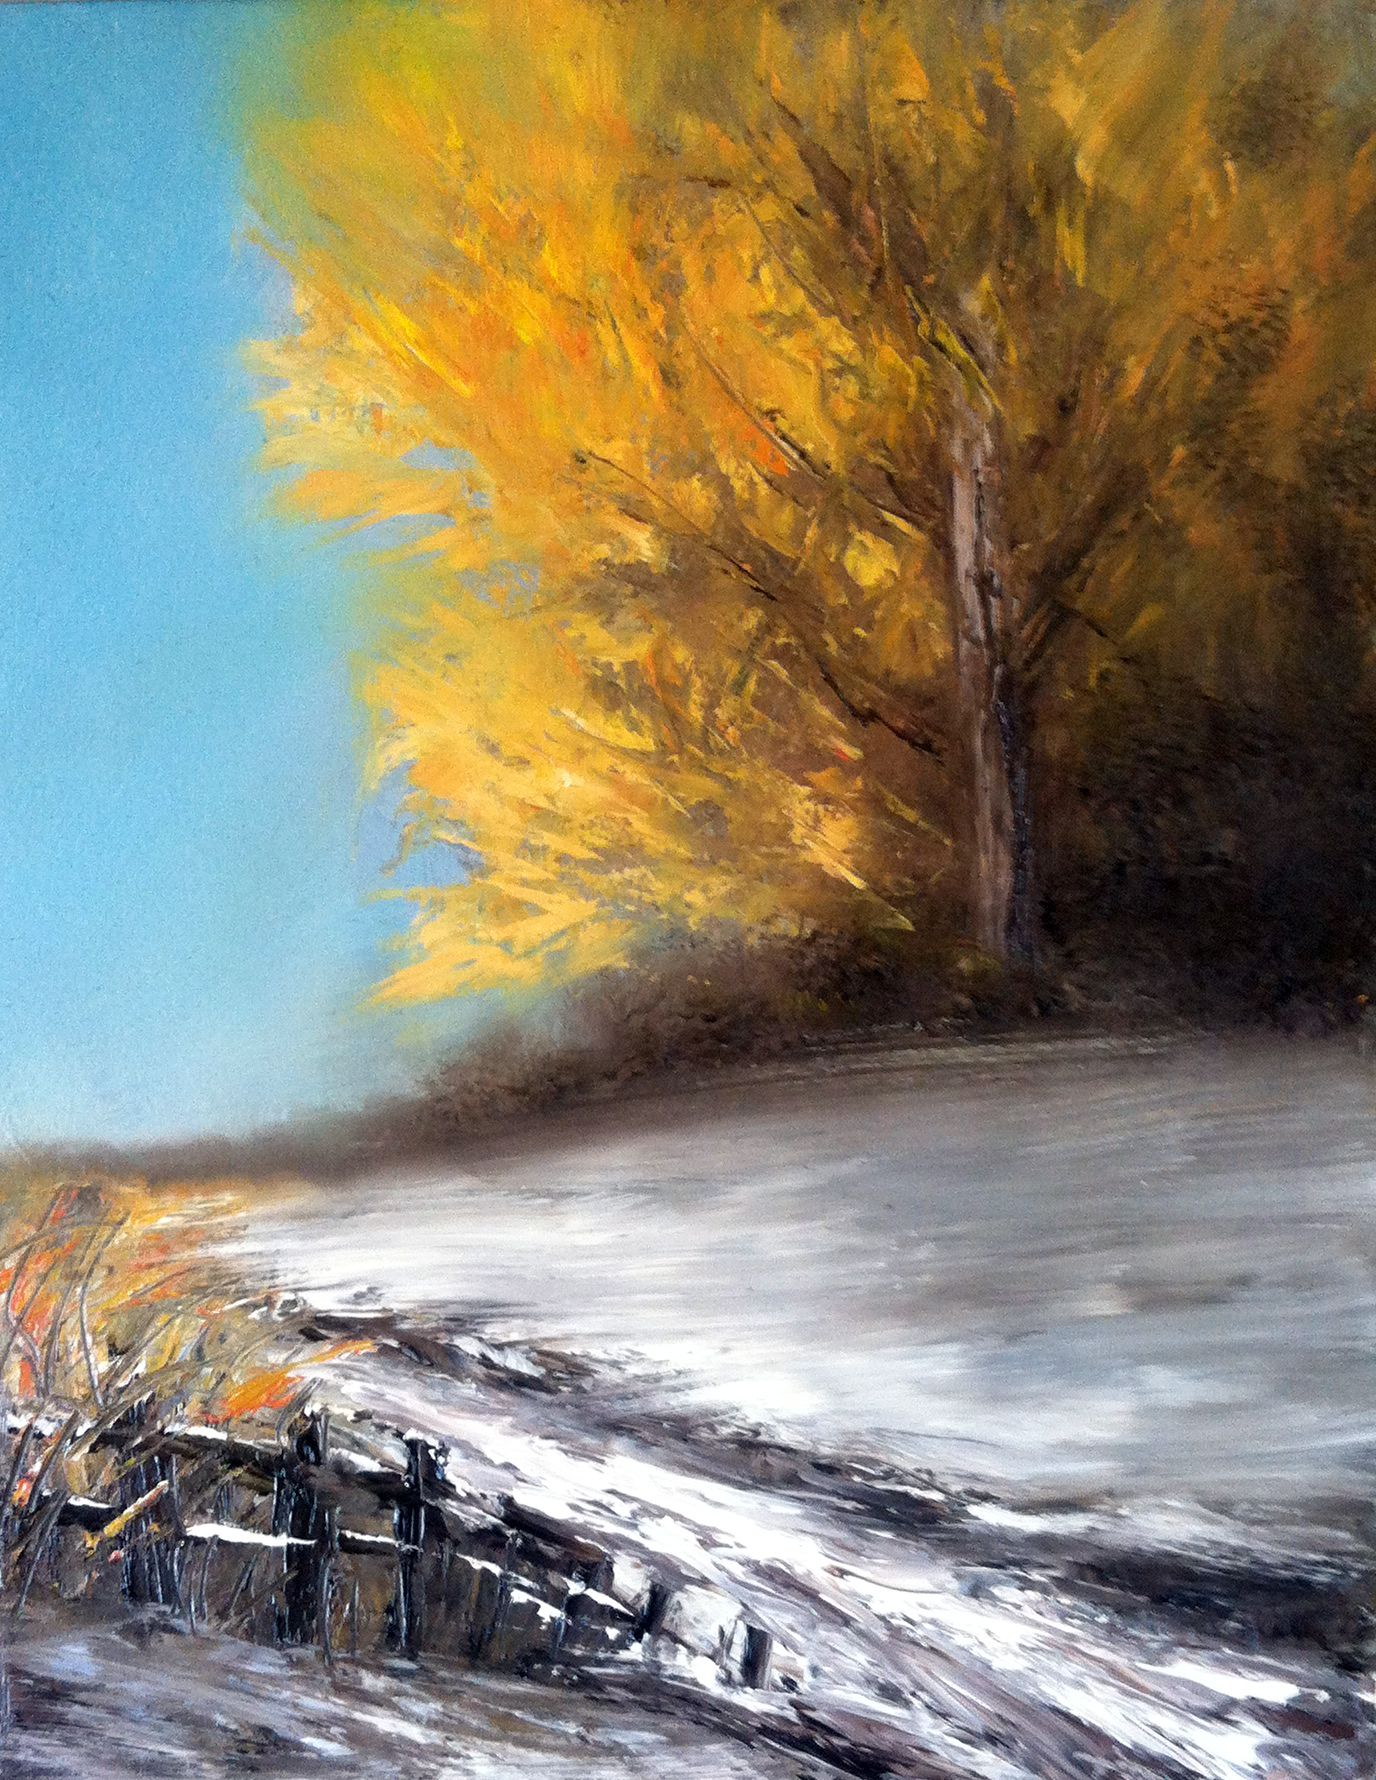 Autumn Painting Impressionist Landscape Art Abstract Palette Knife Painting Contemporary Wall Art Original Oil Painting On Wood 8x10 Winter Landscape Painting Autumn Painting Oil Painting Landscape